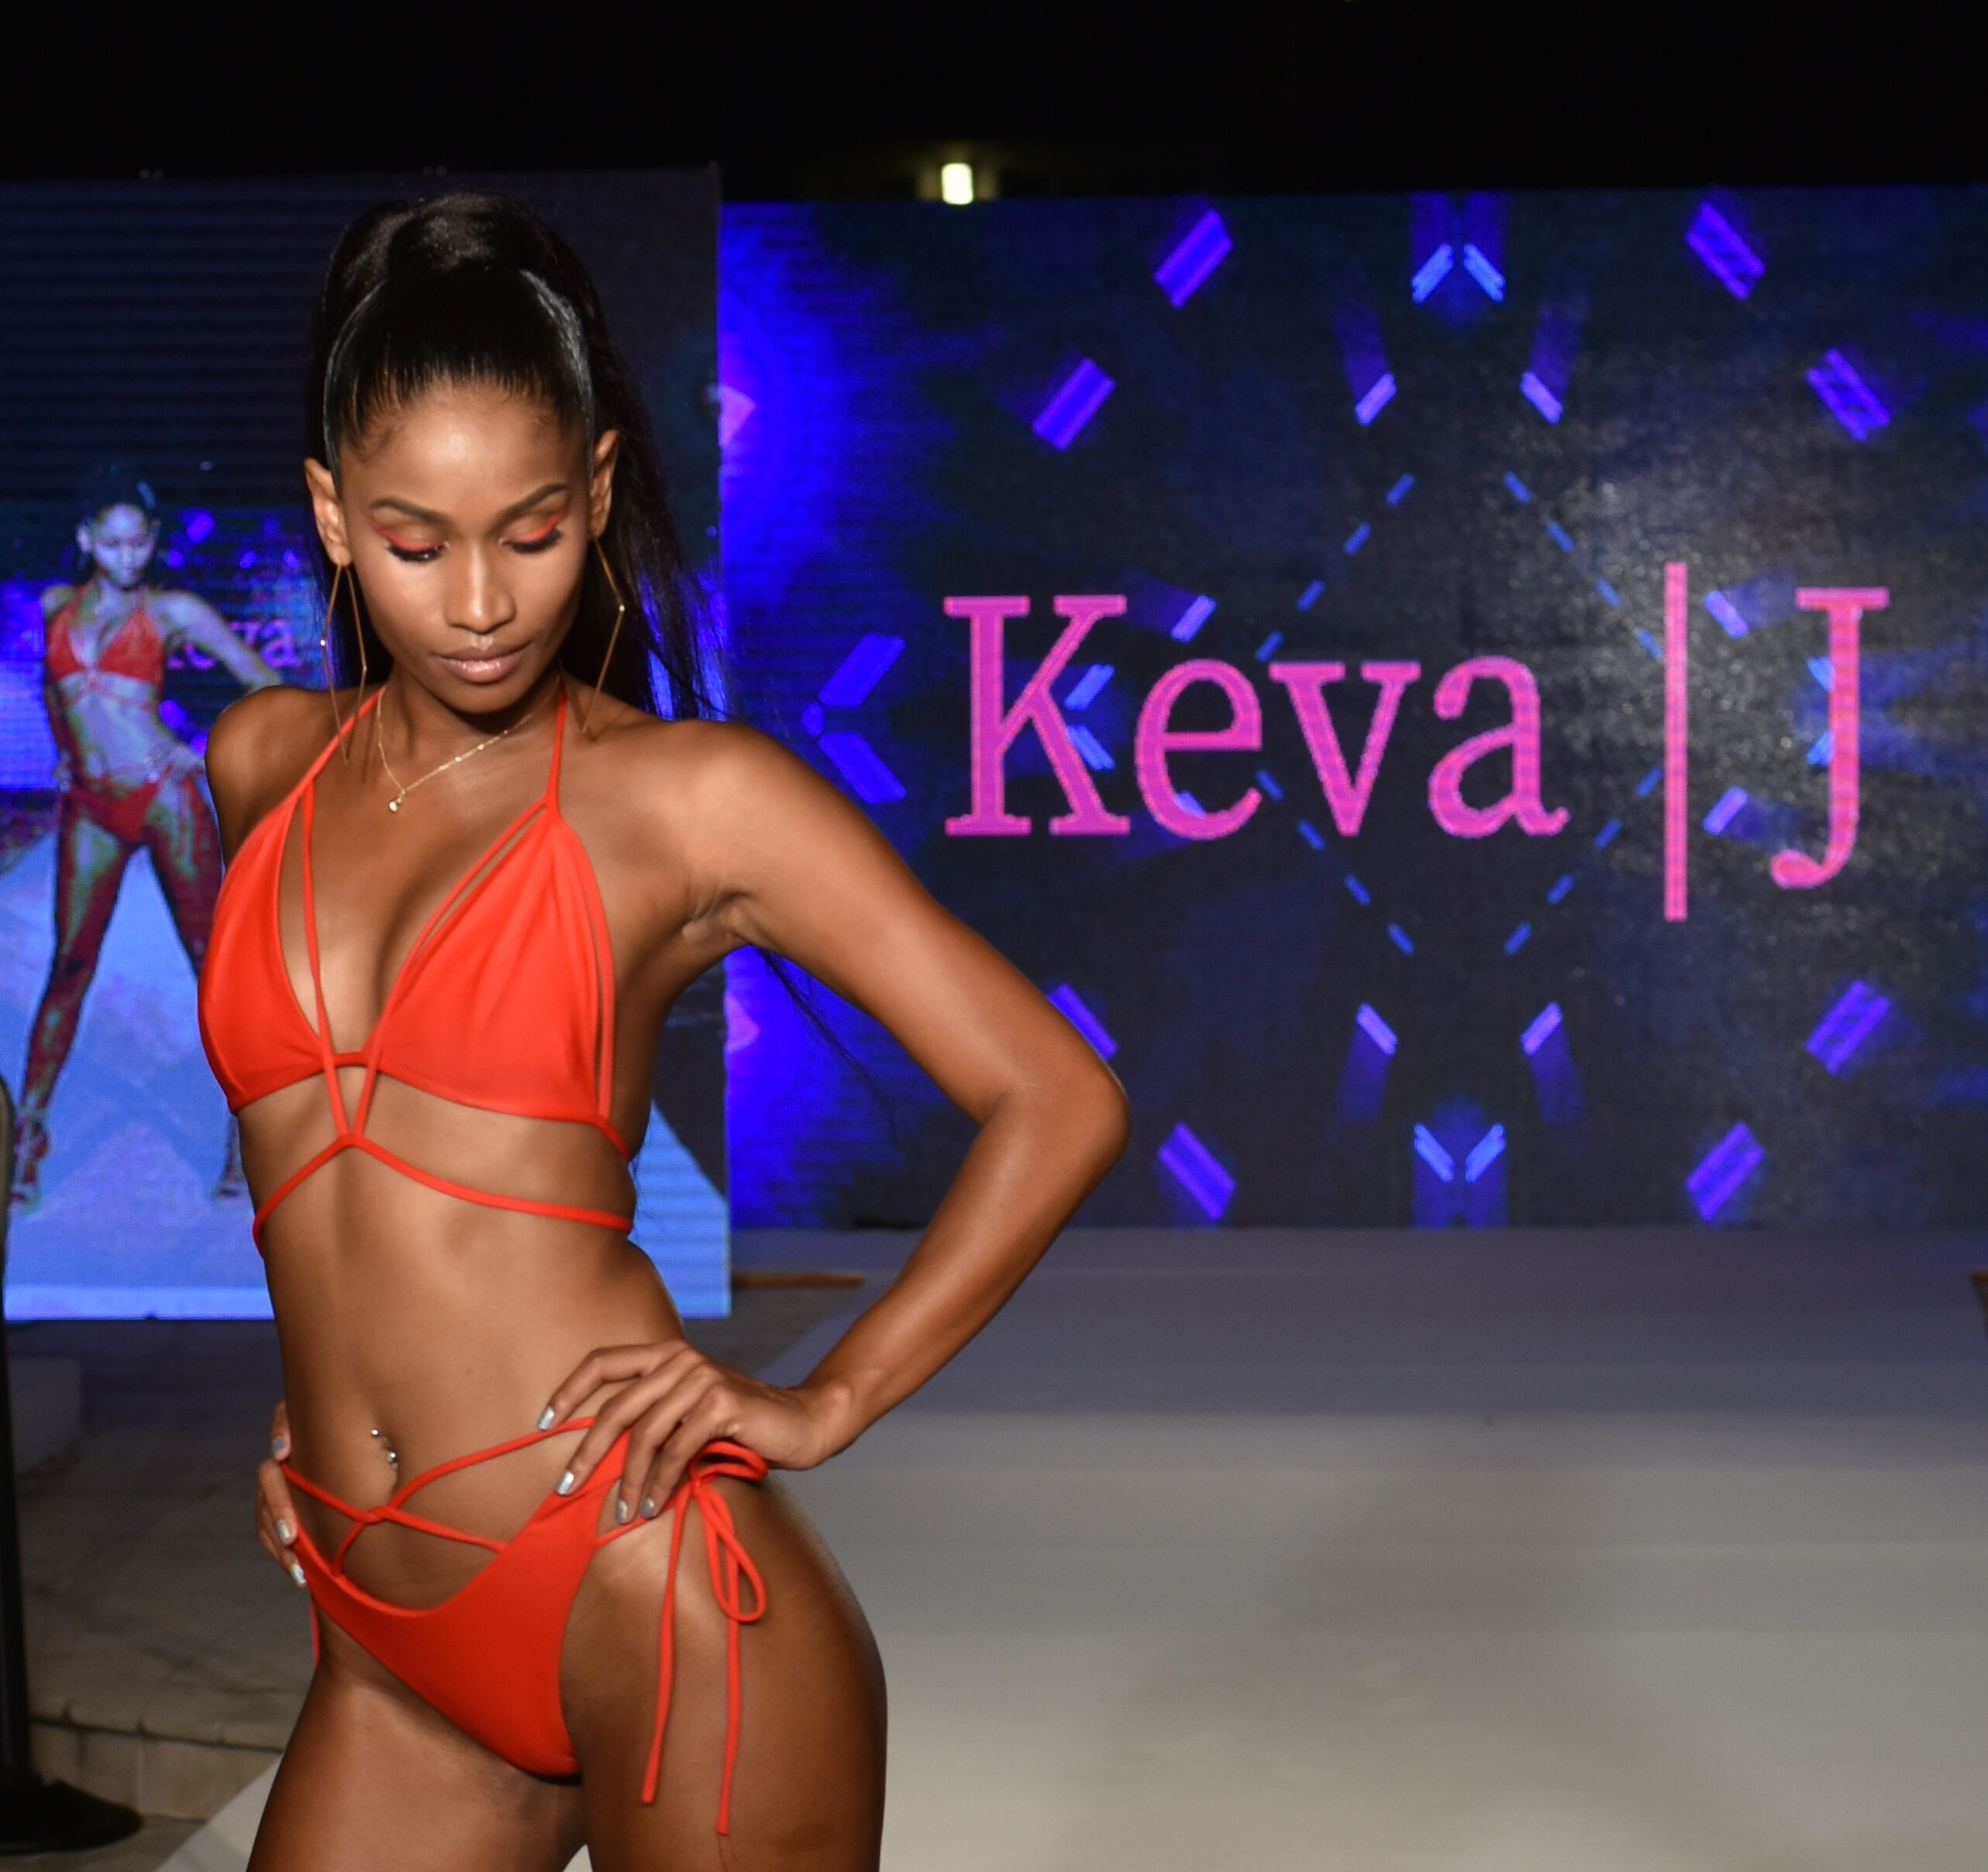 Keva J at Miami Swim Week